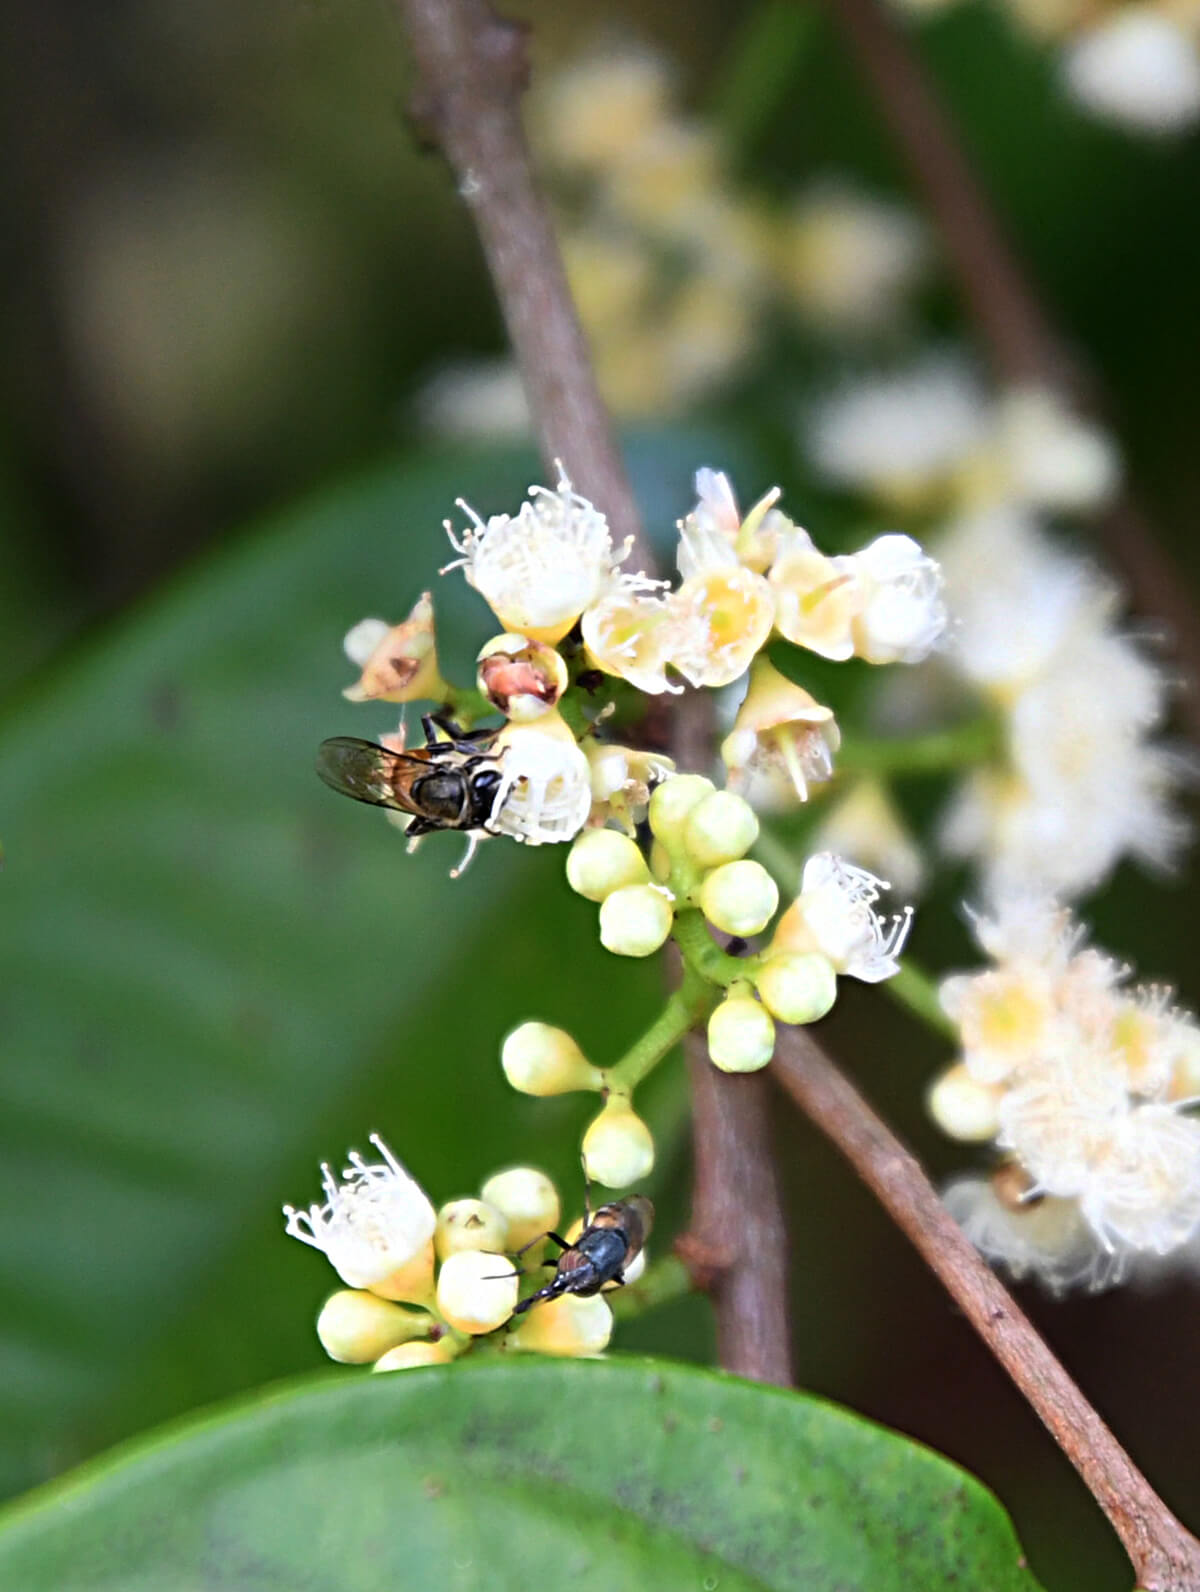 Stingless bees were introduced to Horizon Hills.